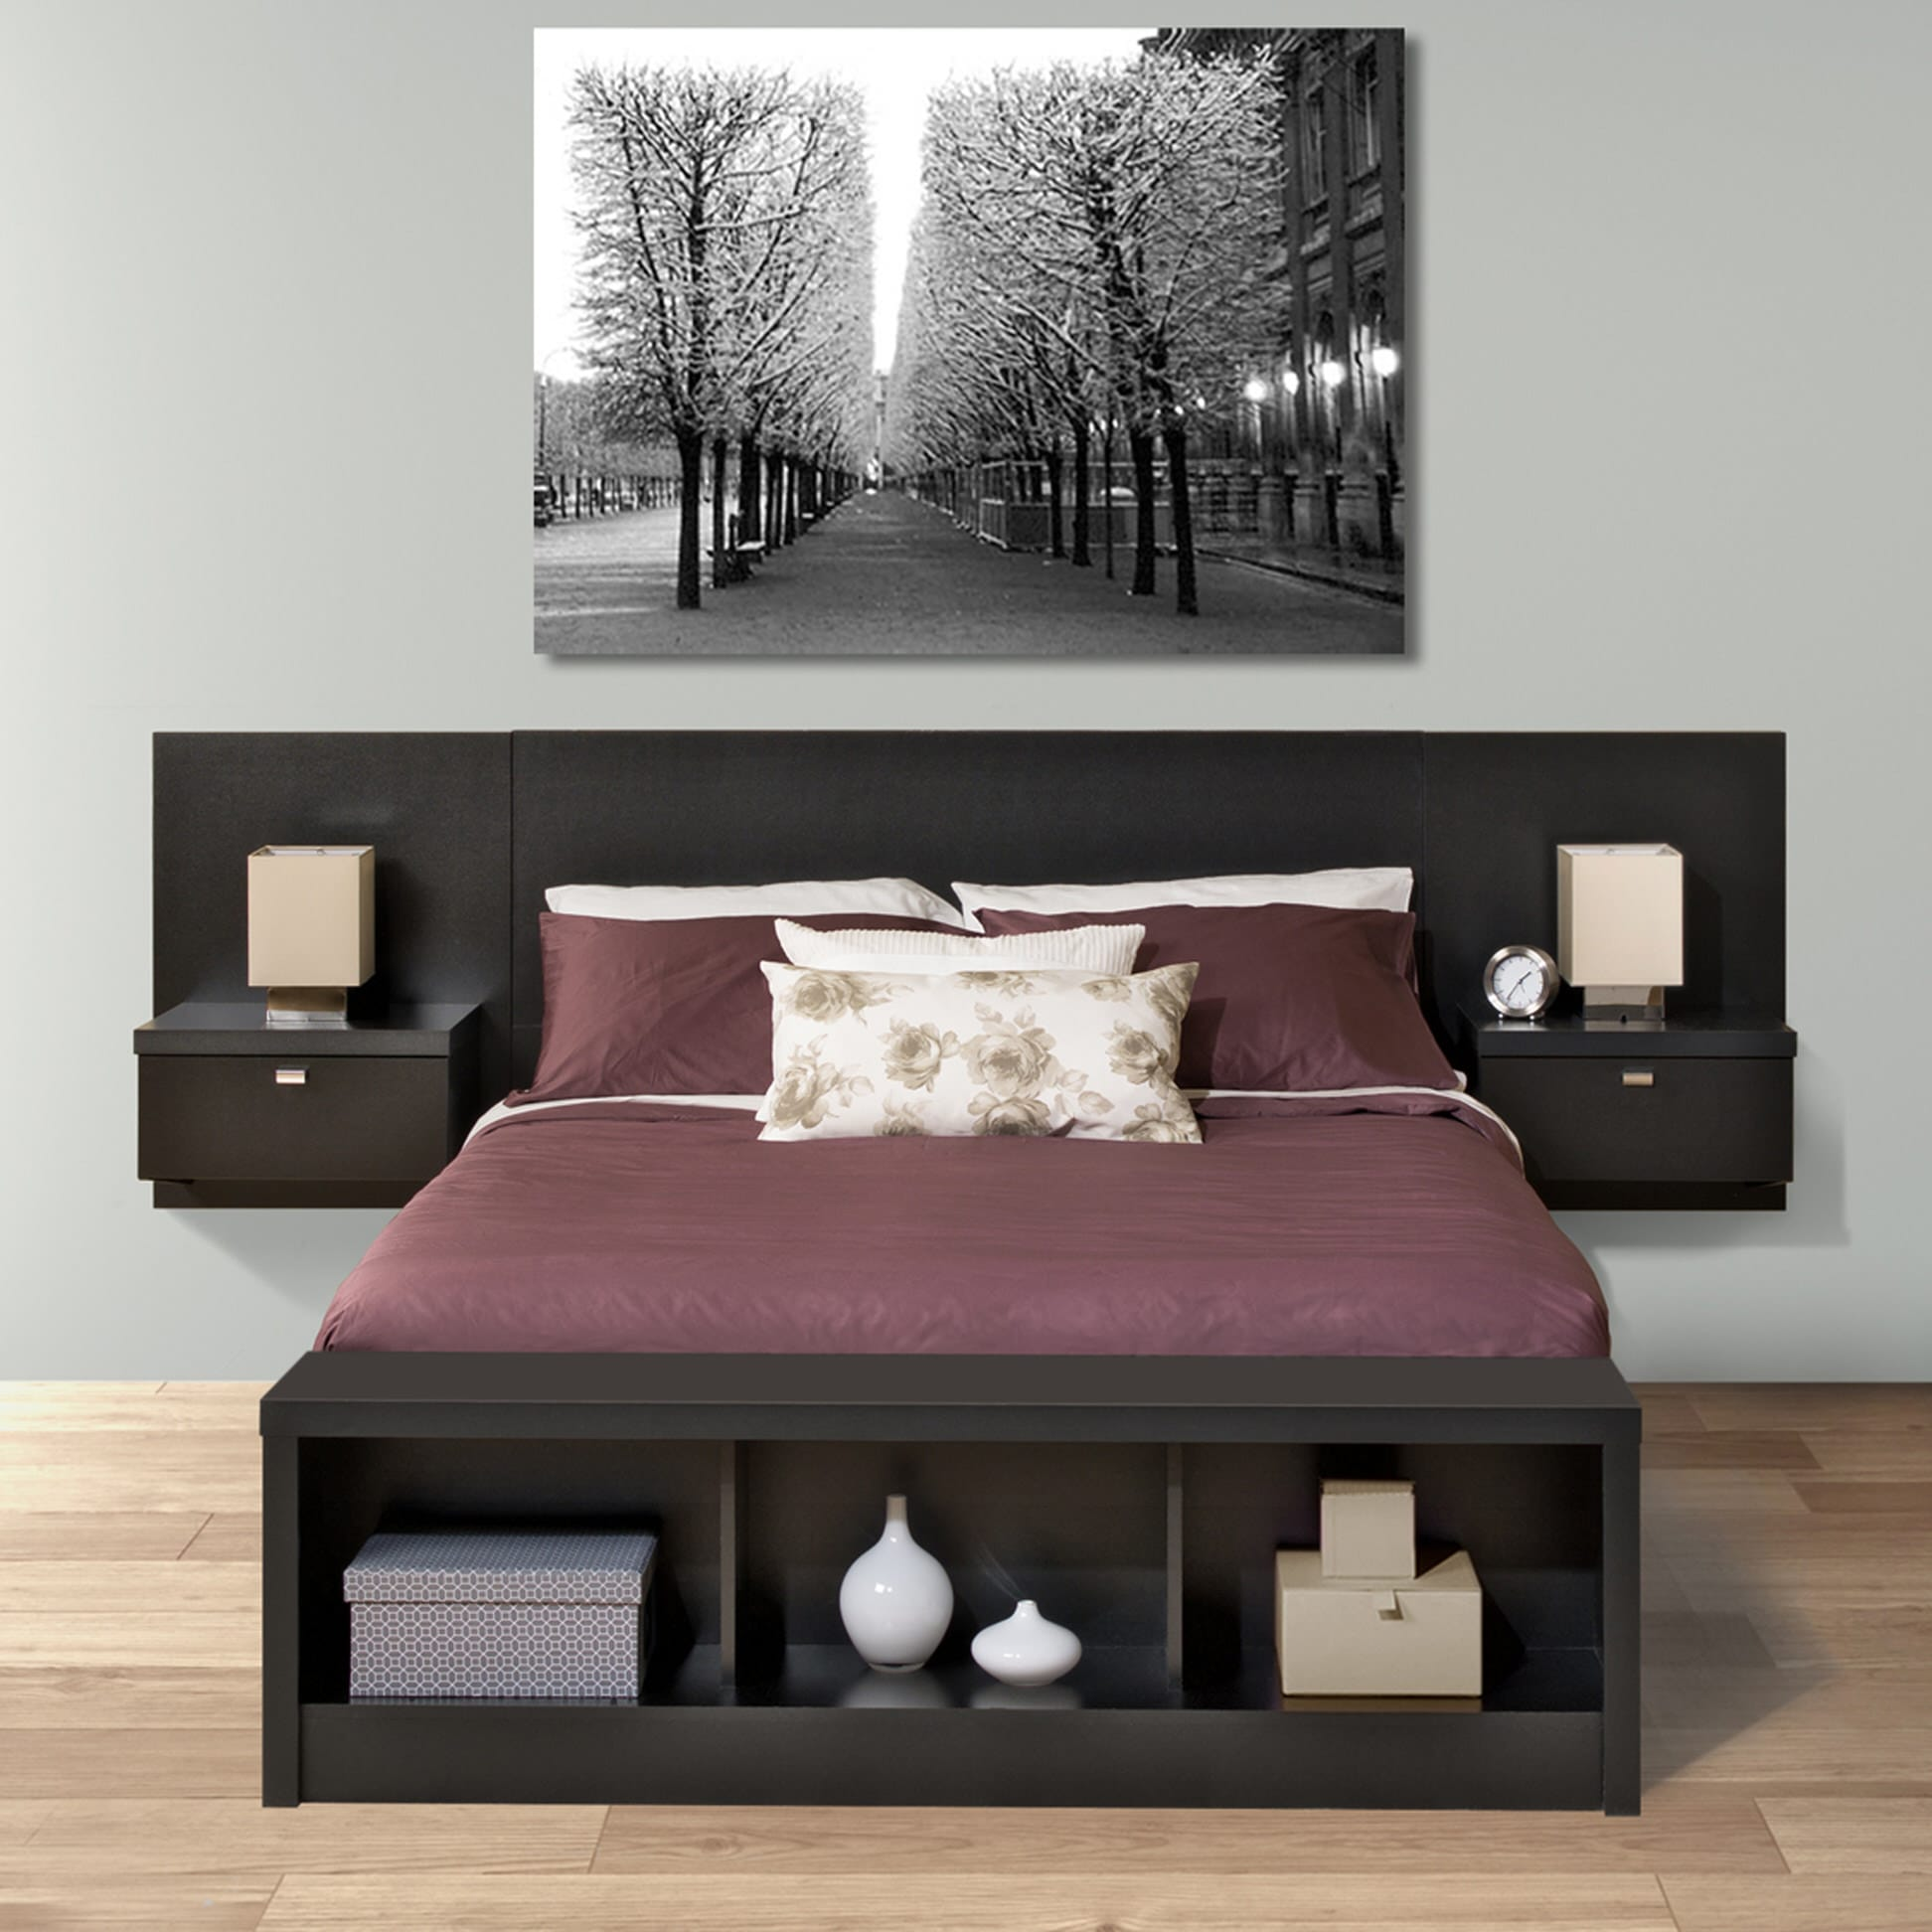 Series 9 Designer Floating Queen Headboard With Nightstands By Prepac